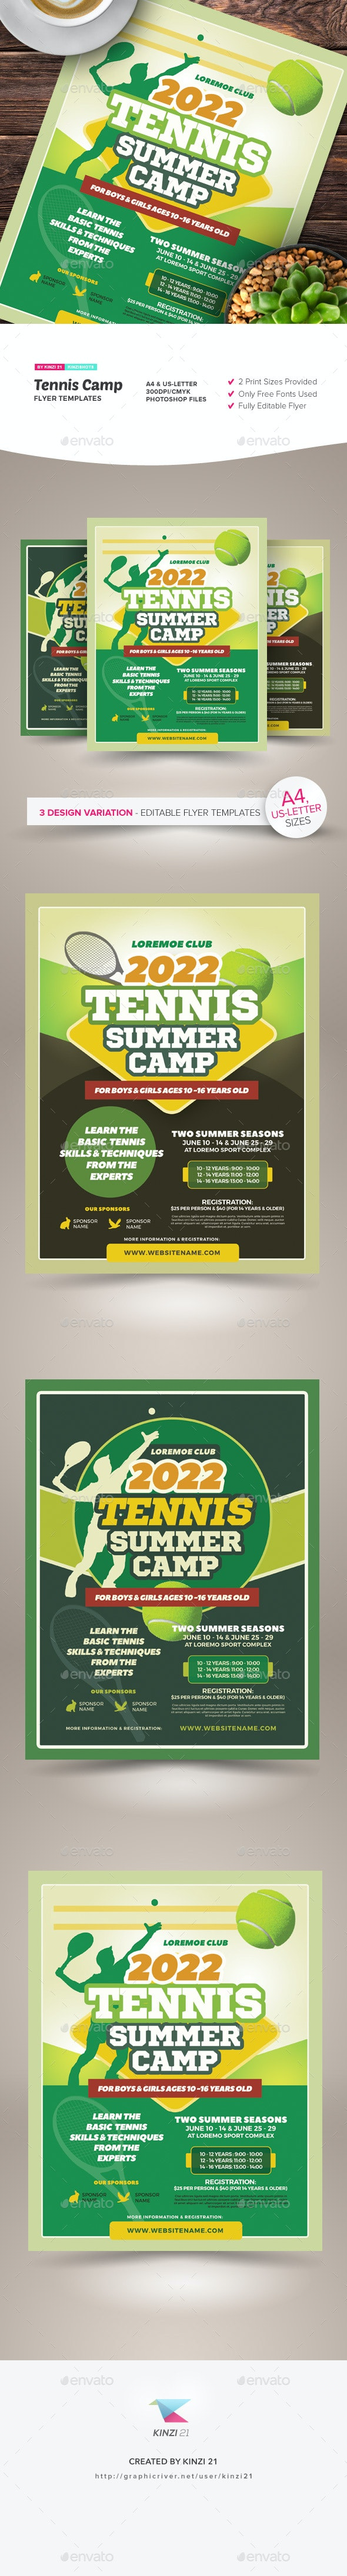 Tennis Camp Flyer Templates - Sports Events